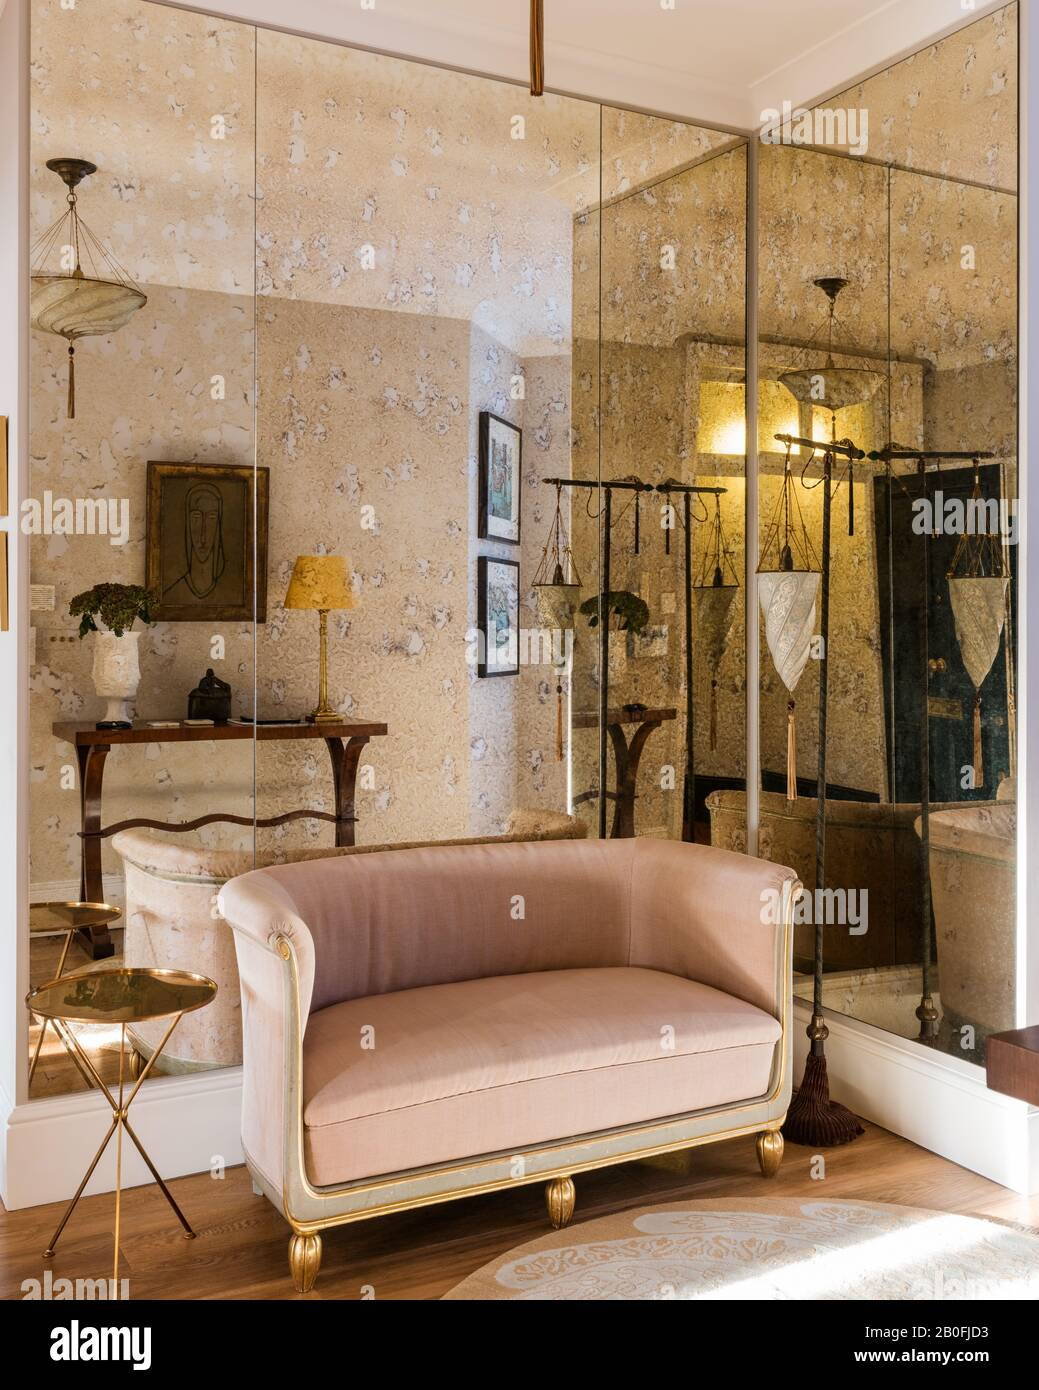 Mirrored wall with vintage French two-seater sofa upholstered in pink velvet. Stock Photo